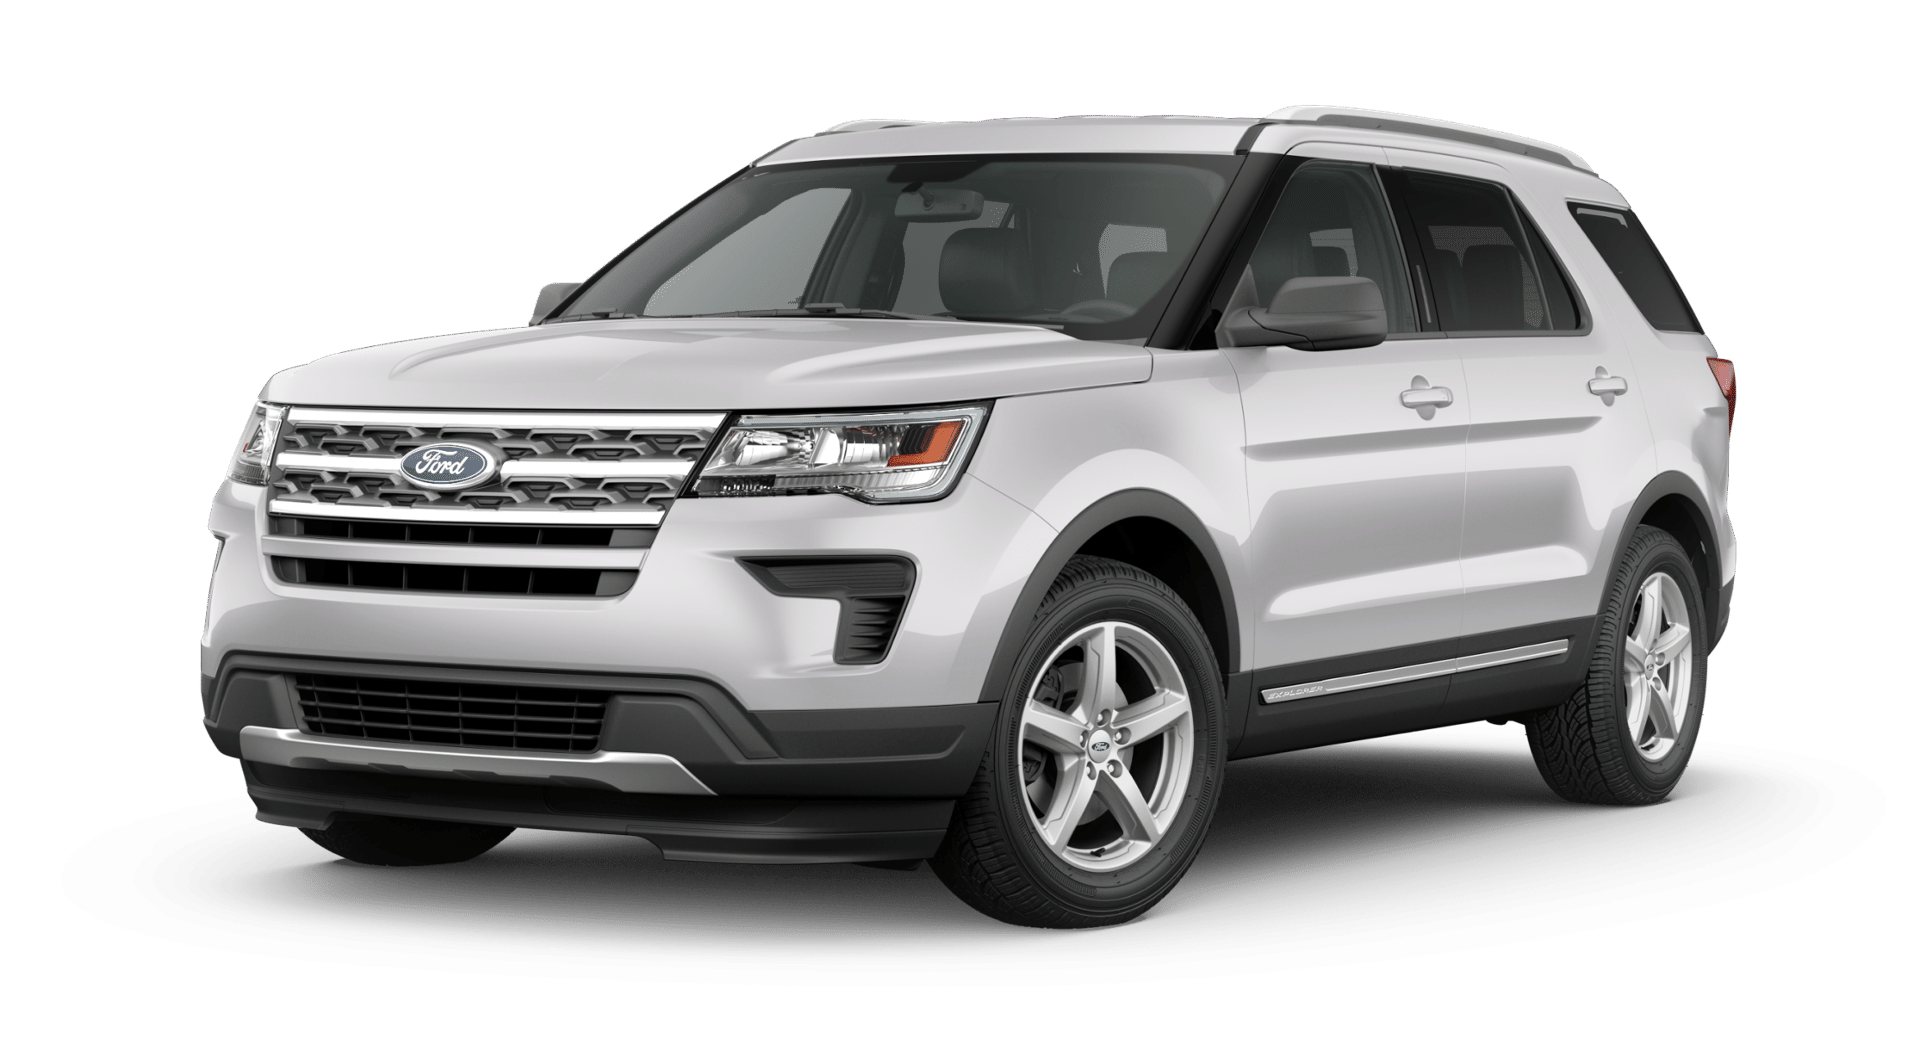 93 All New 2019 The Ford Explorer Specs And Review